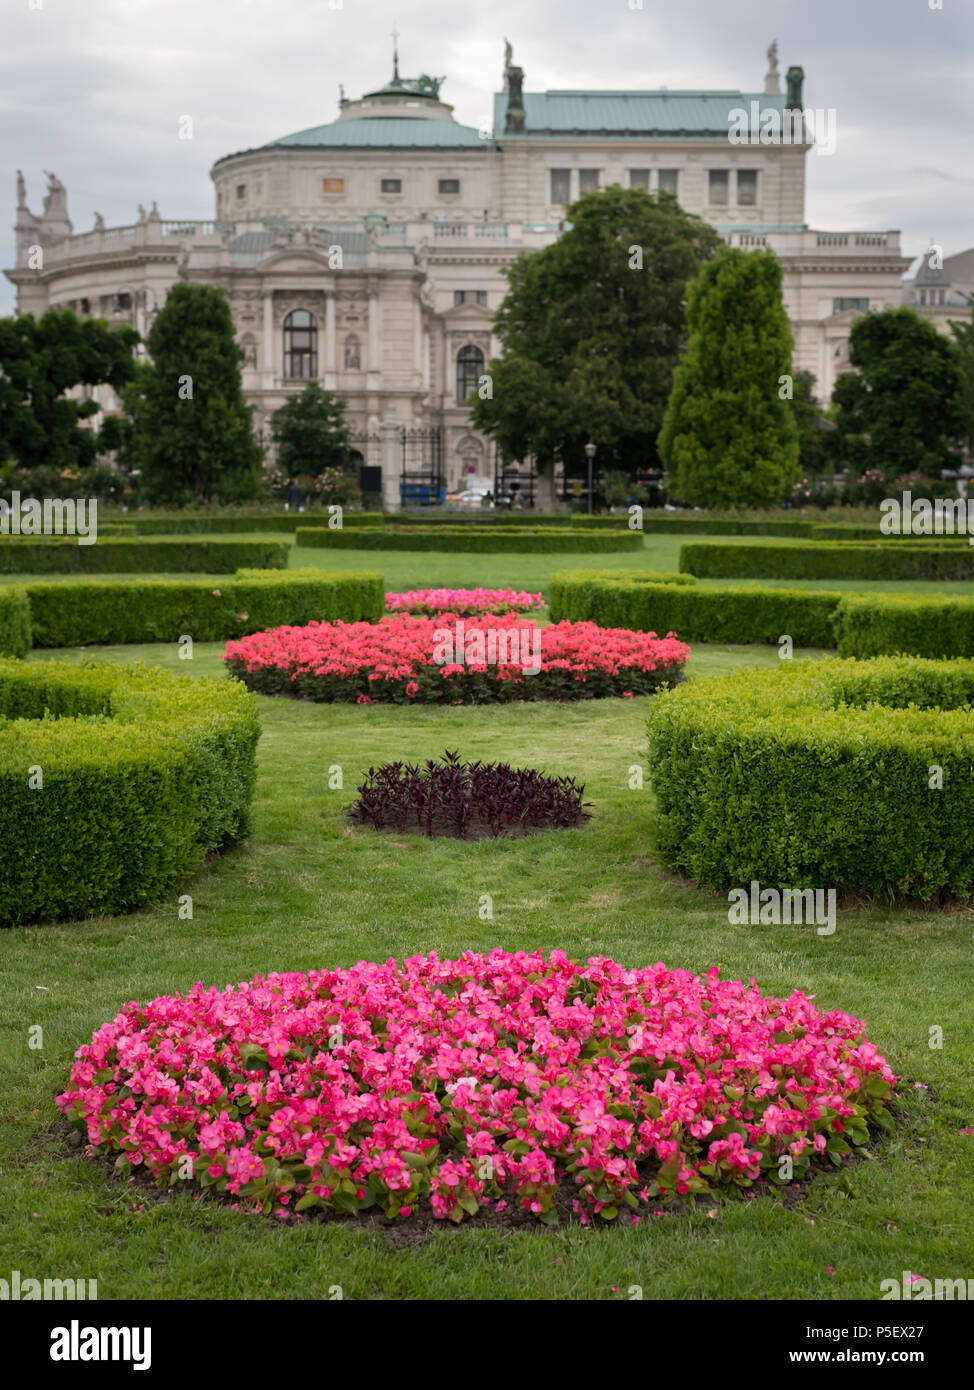 Flowerbed with various flowers, hedges and green meadow in Volksgarten, Vienna (Austria), Court Theatre in the background - Stock Image